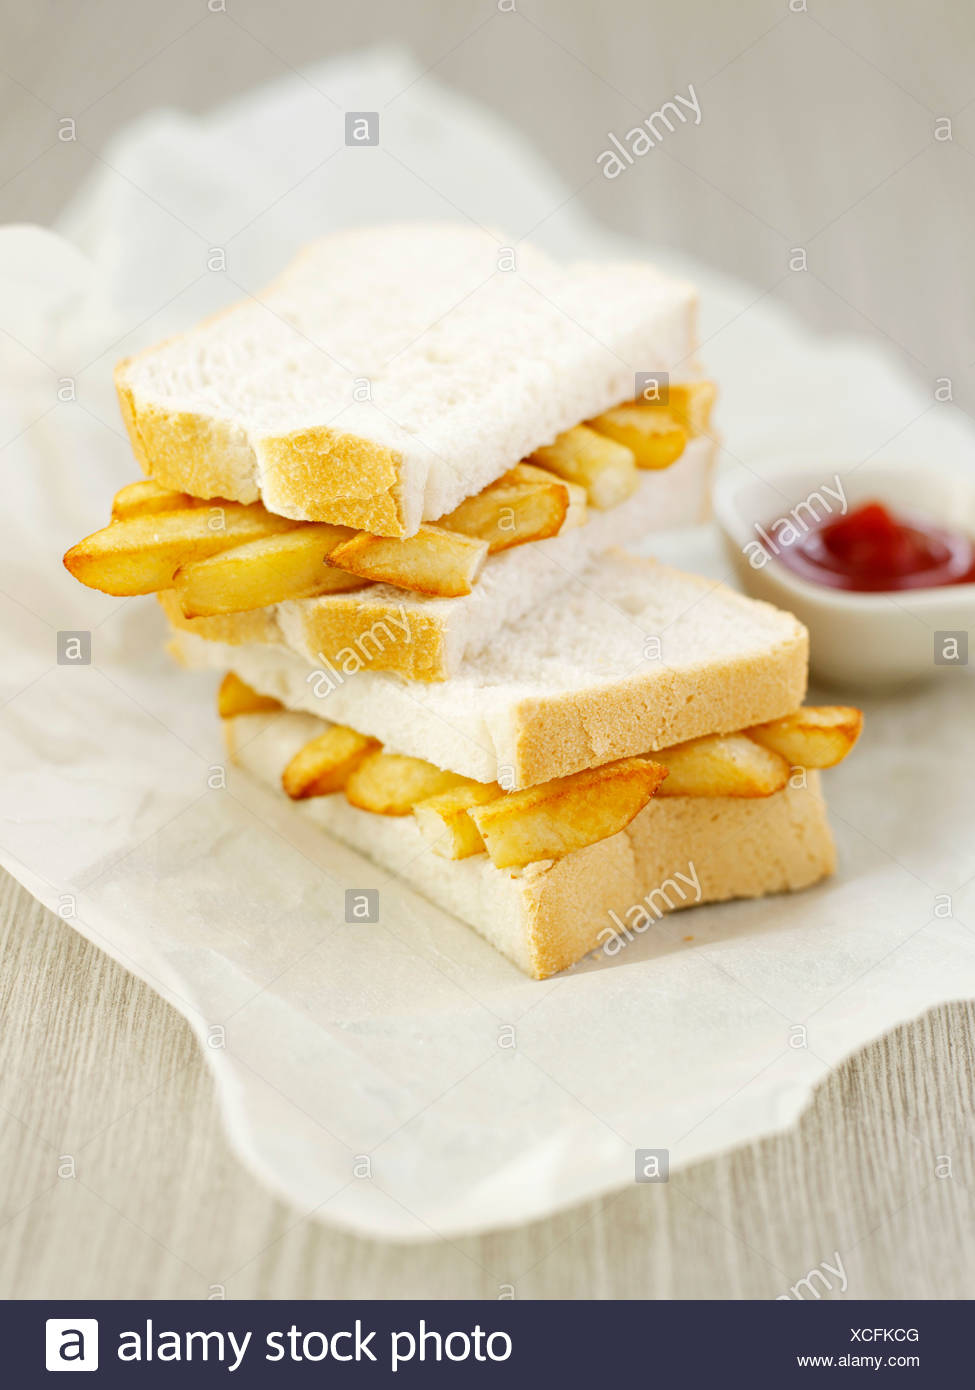 Chip butty, halved, on paper with dish of ketchup - Stock Image